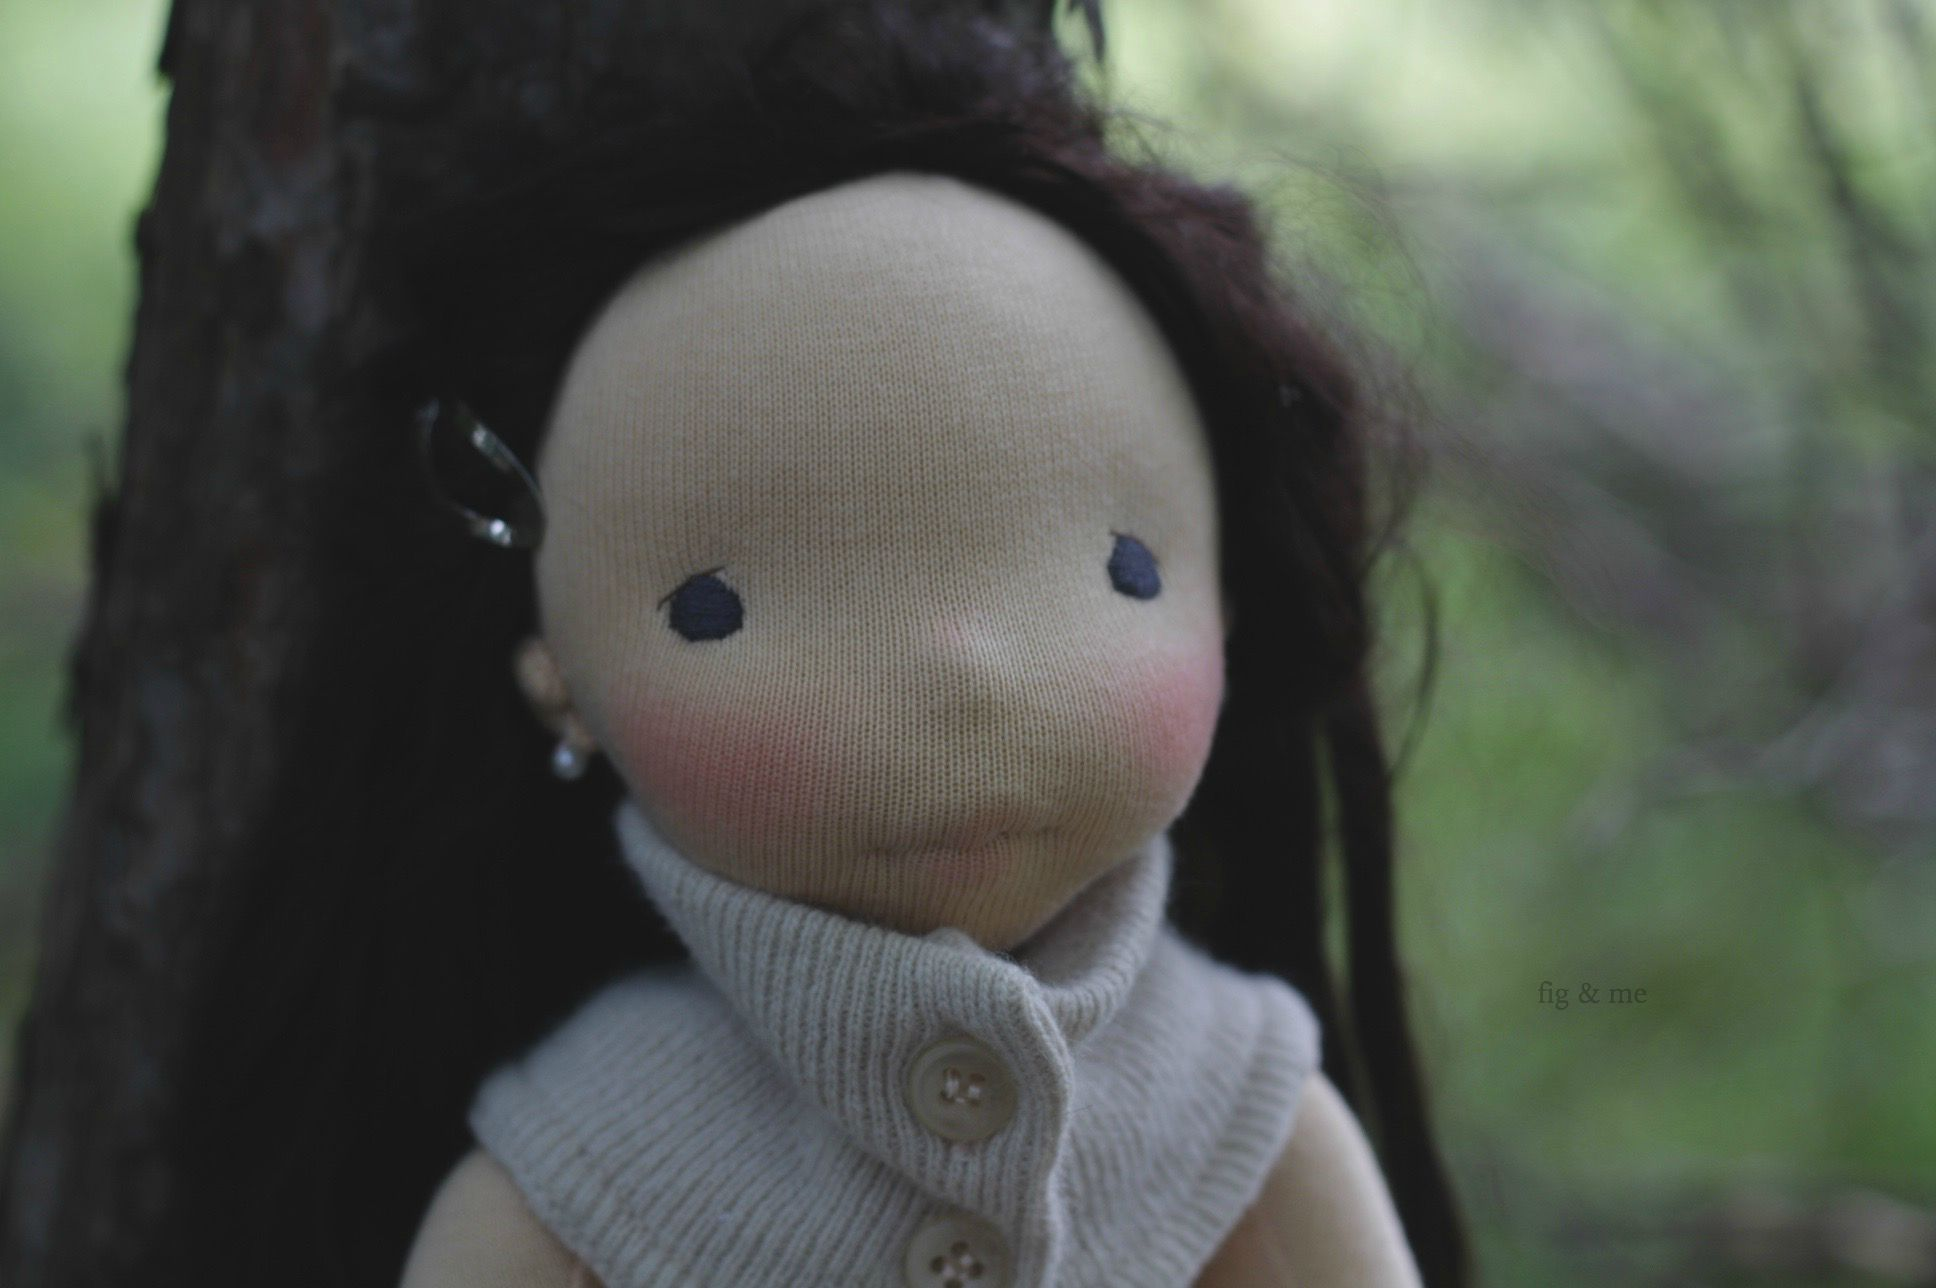 Natural handmade cloth doll by fig and me.